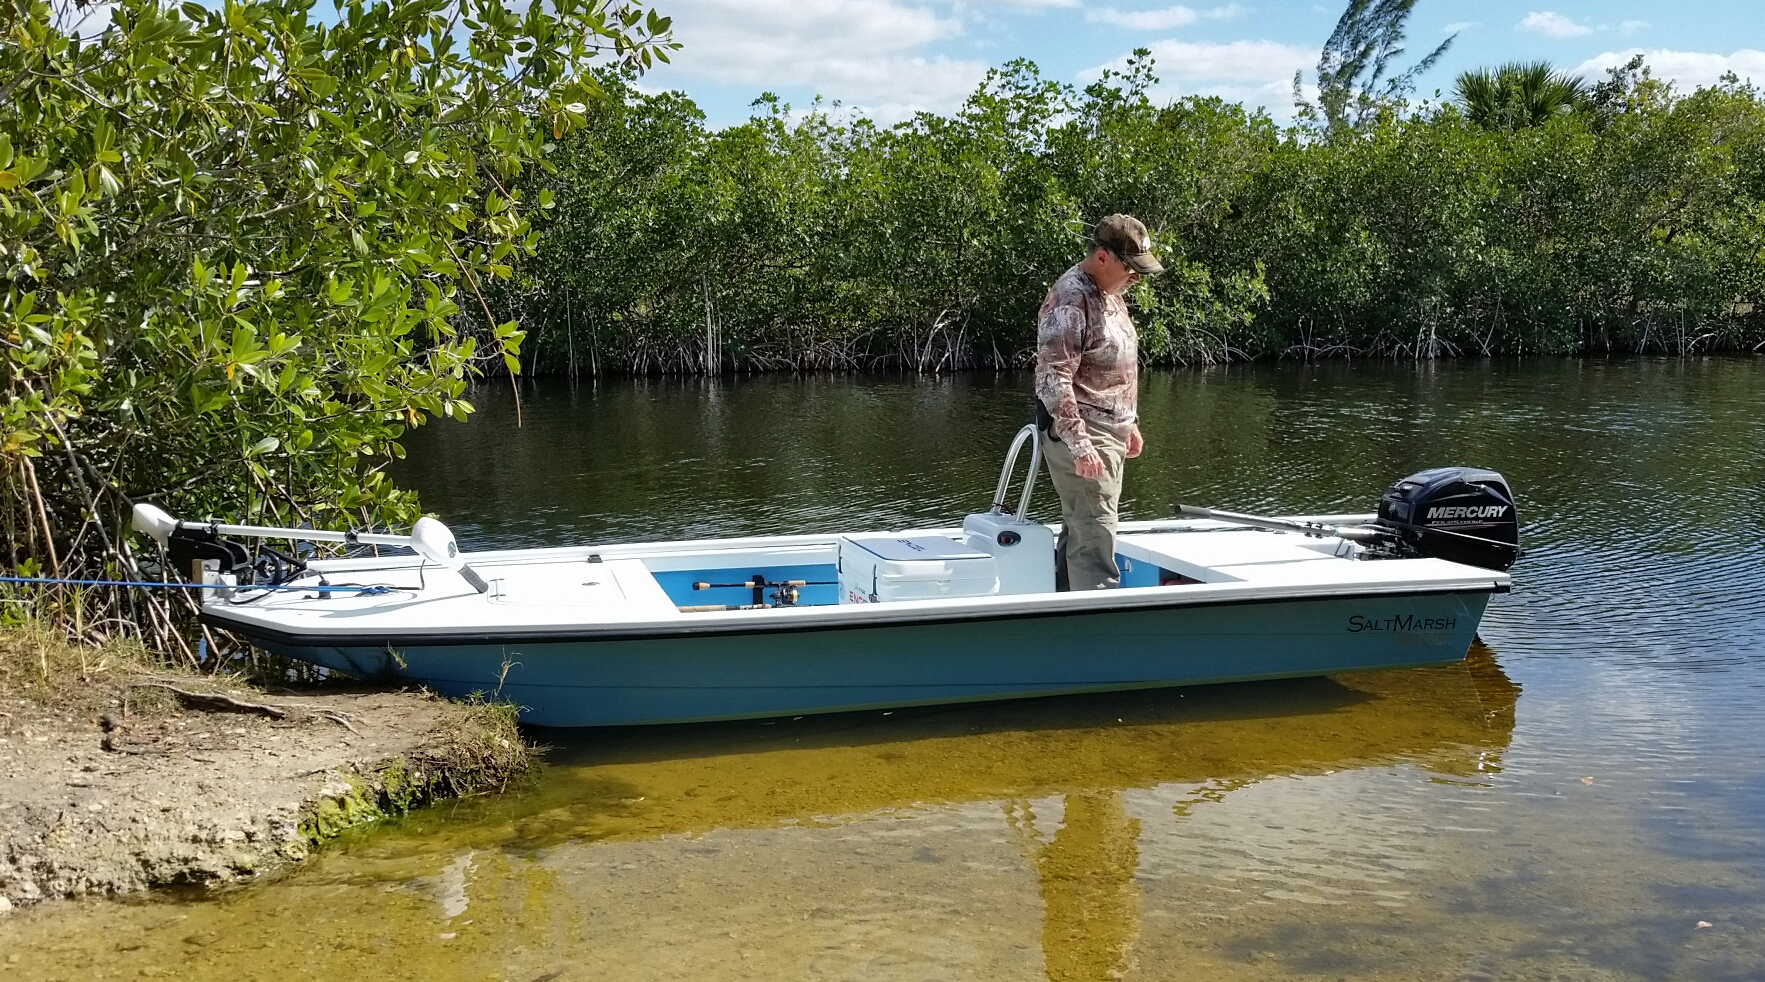 A Lesson In Skiff Quality And Service Alis Skimmer Skiff together with 401172279279759453 furthermore Ambush Micro Skiff Super Skinny as well Brian Kaylor Littles Four Legged Skiff together with Solo Skiff. on micro fishing skiffs